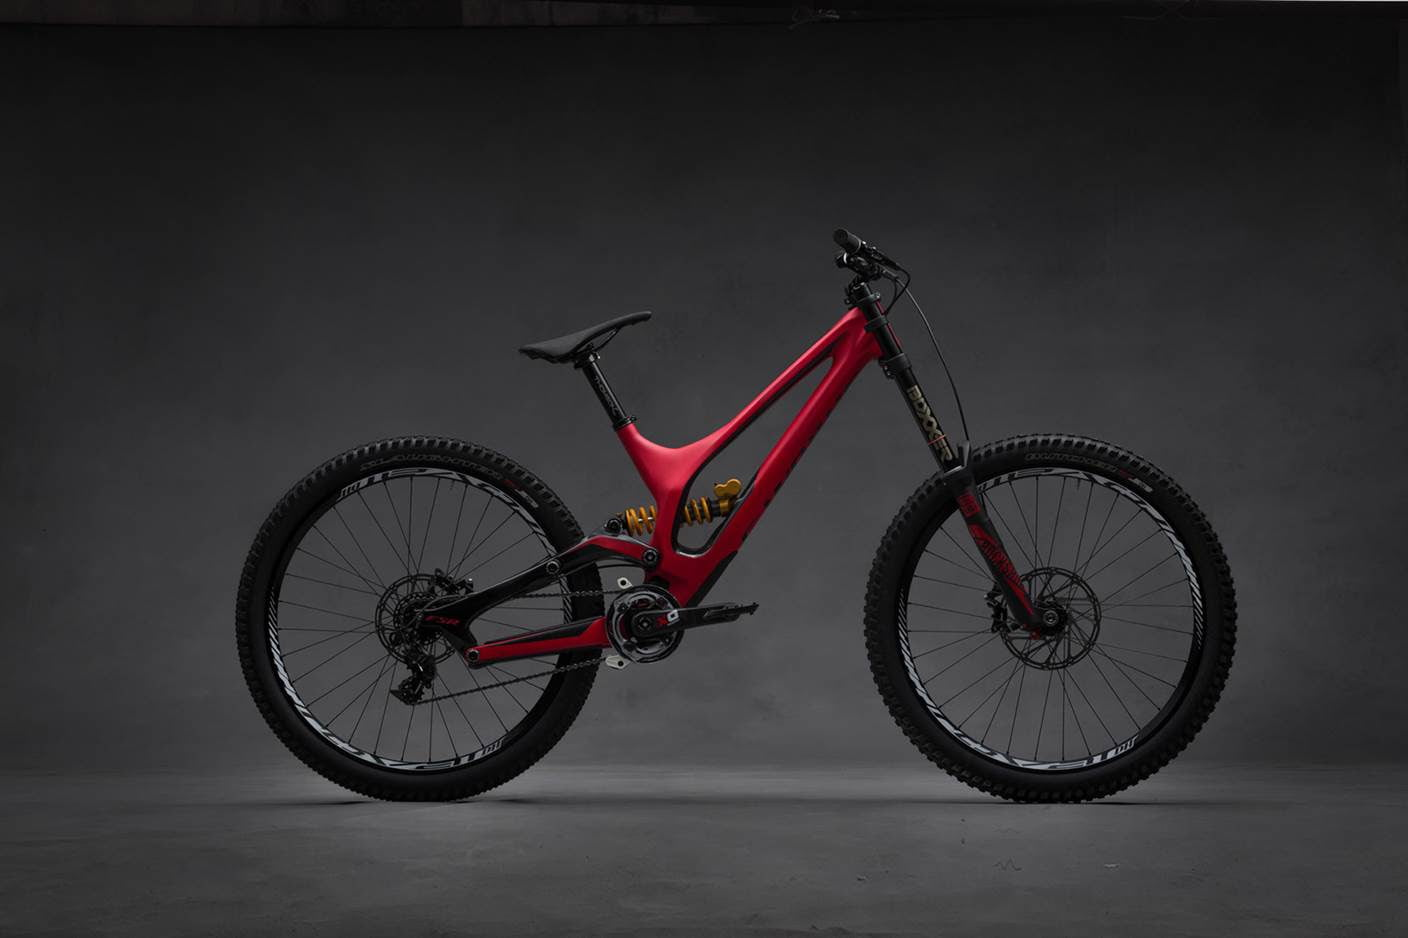 2015-Carbon-Specialized-650B-Demo